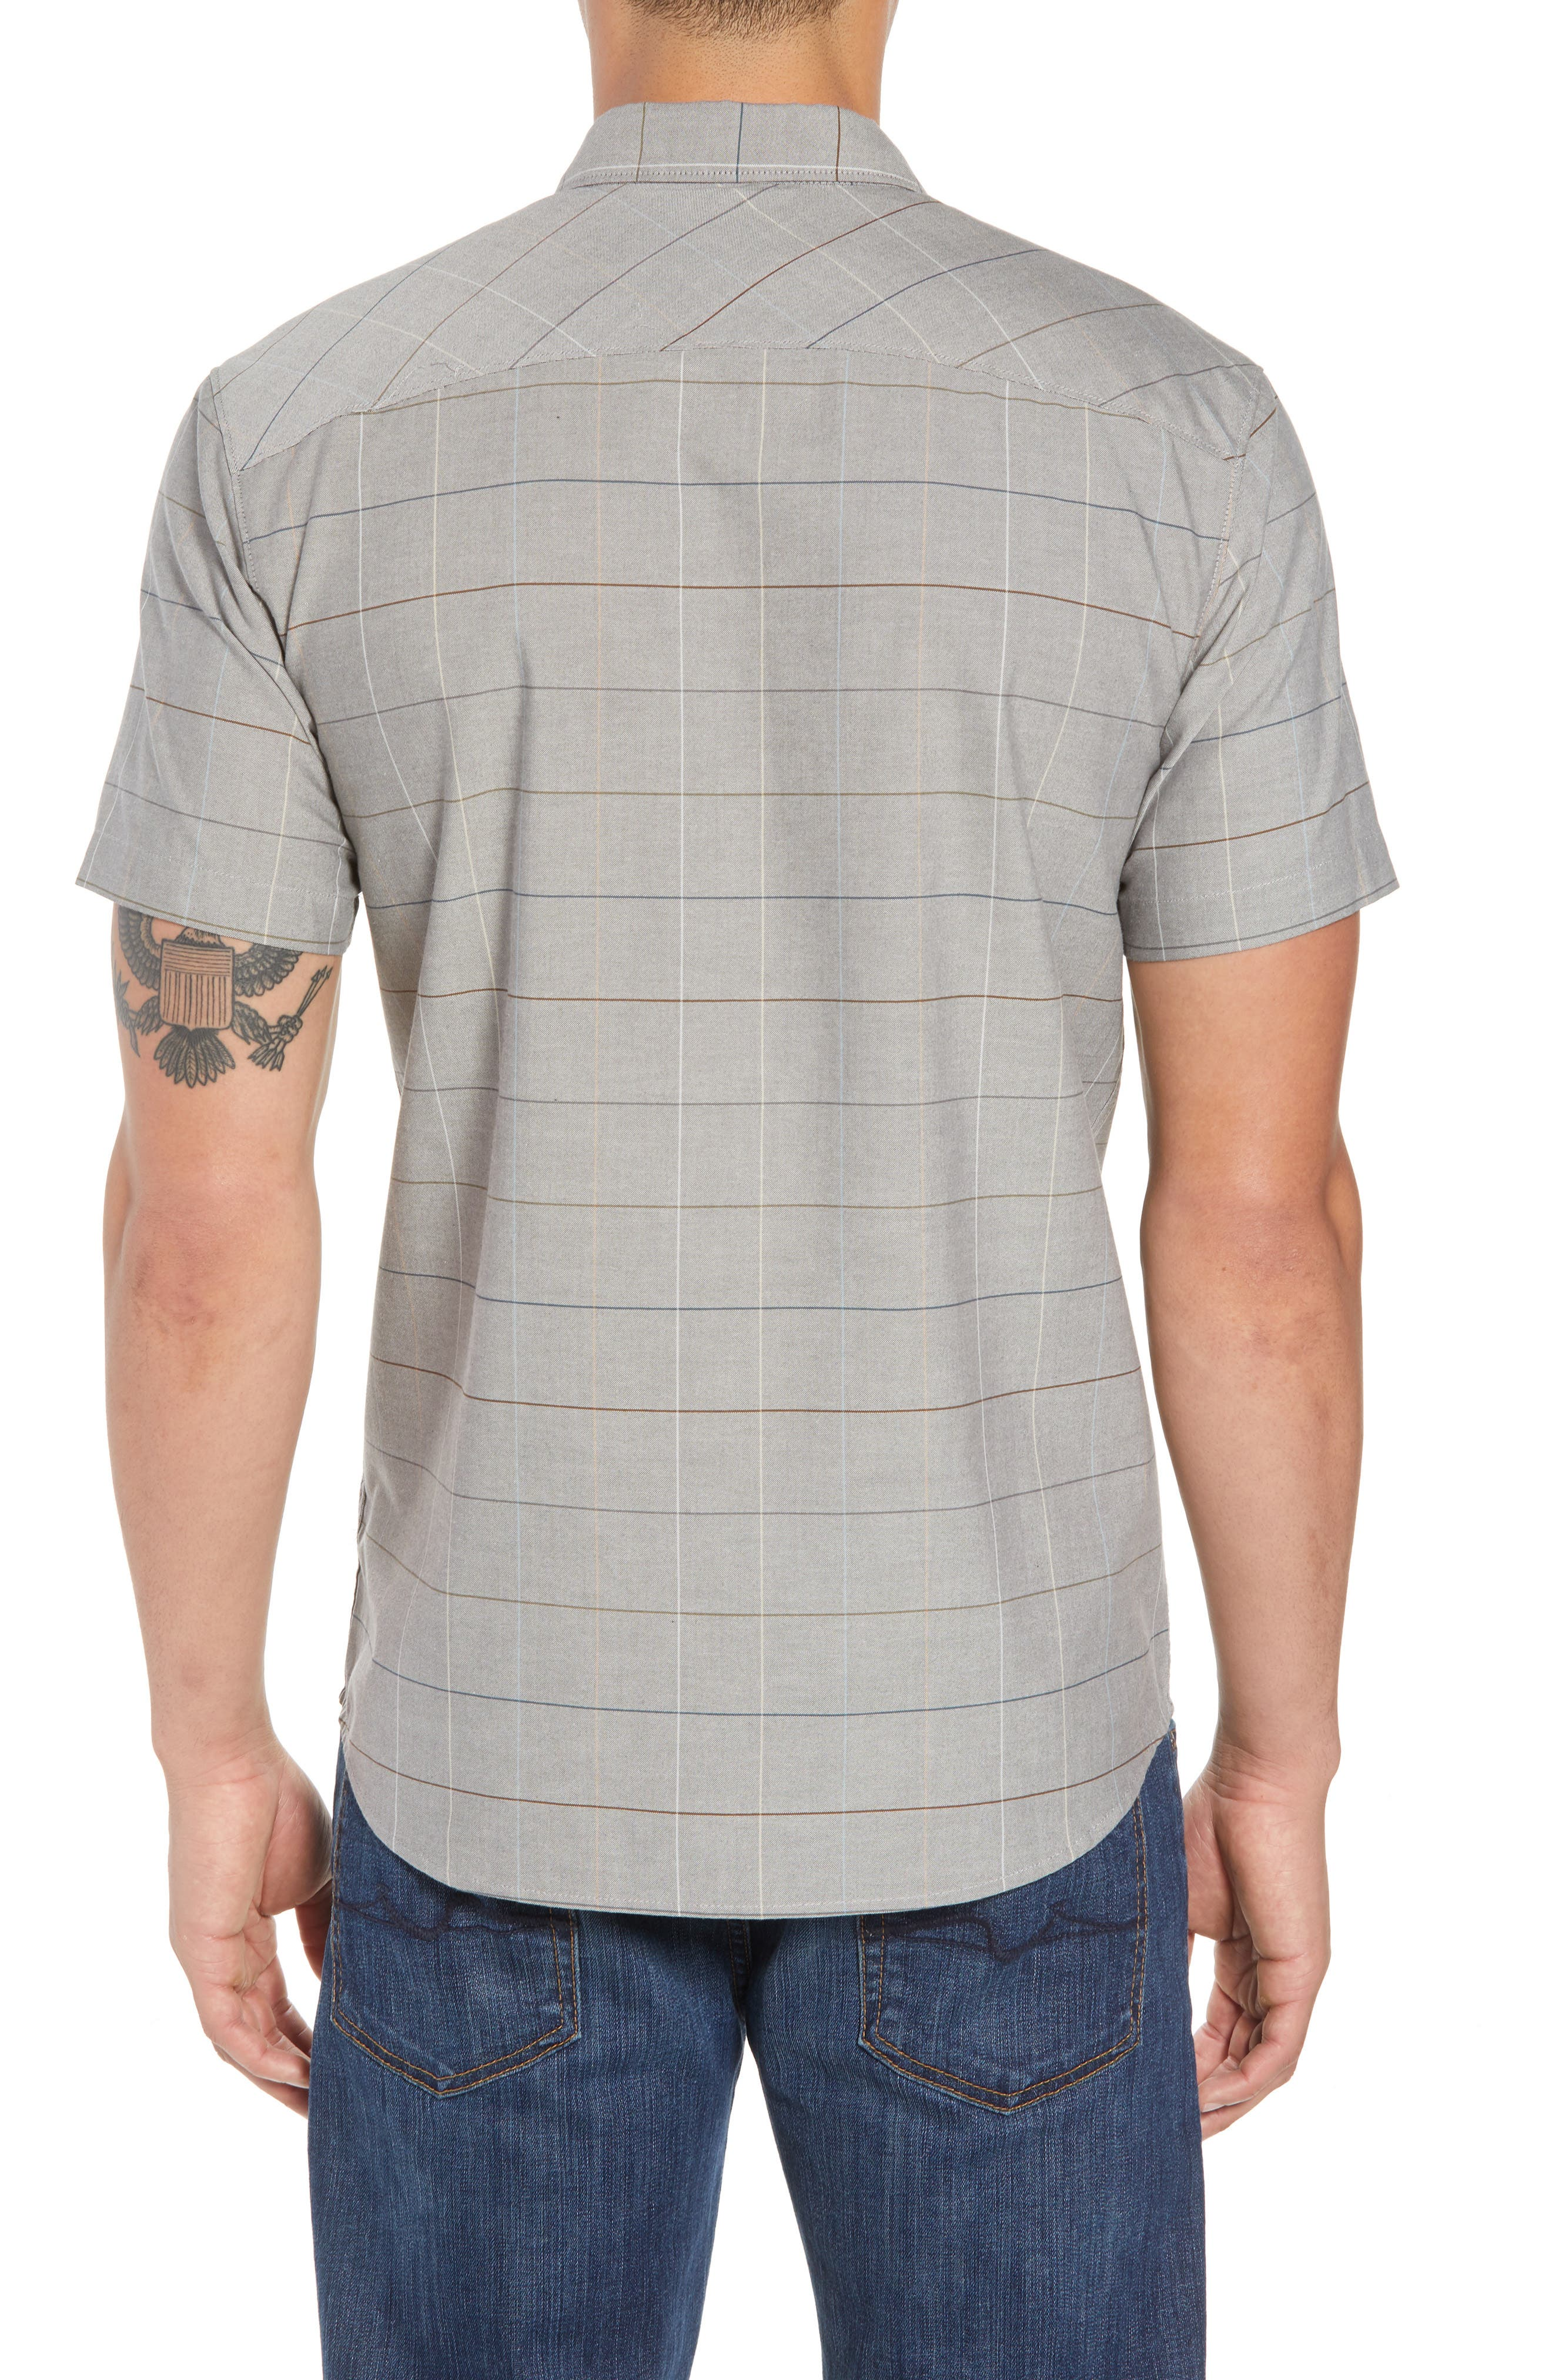 Gridlock Check Woven Shirt,                             Alternate thumbnail 2, color,                             020